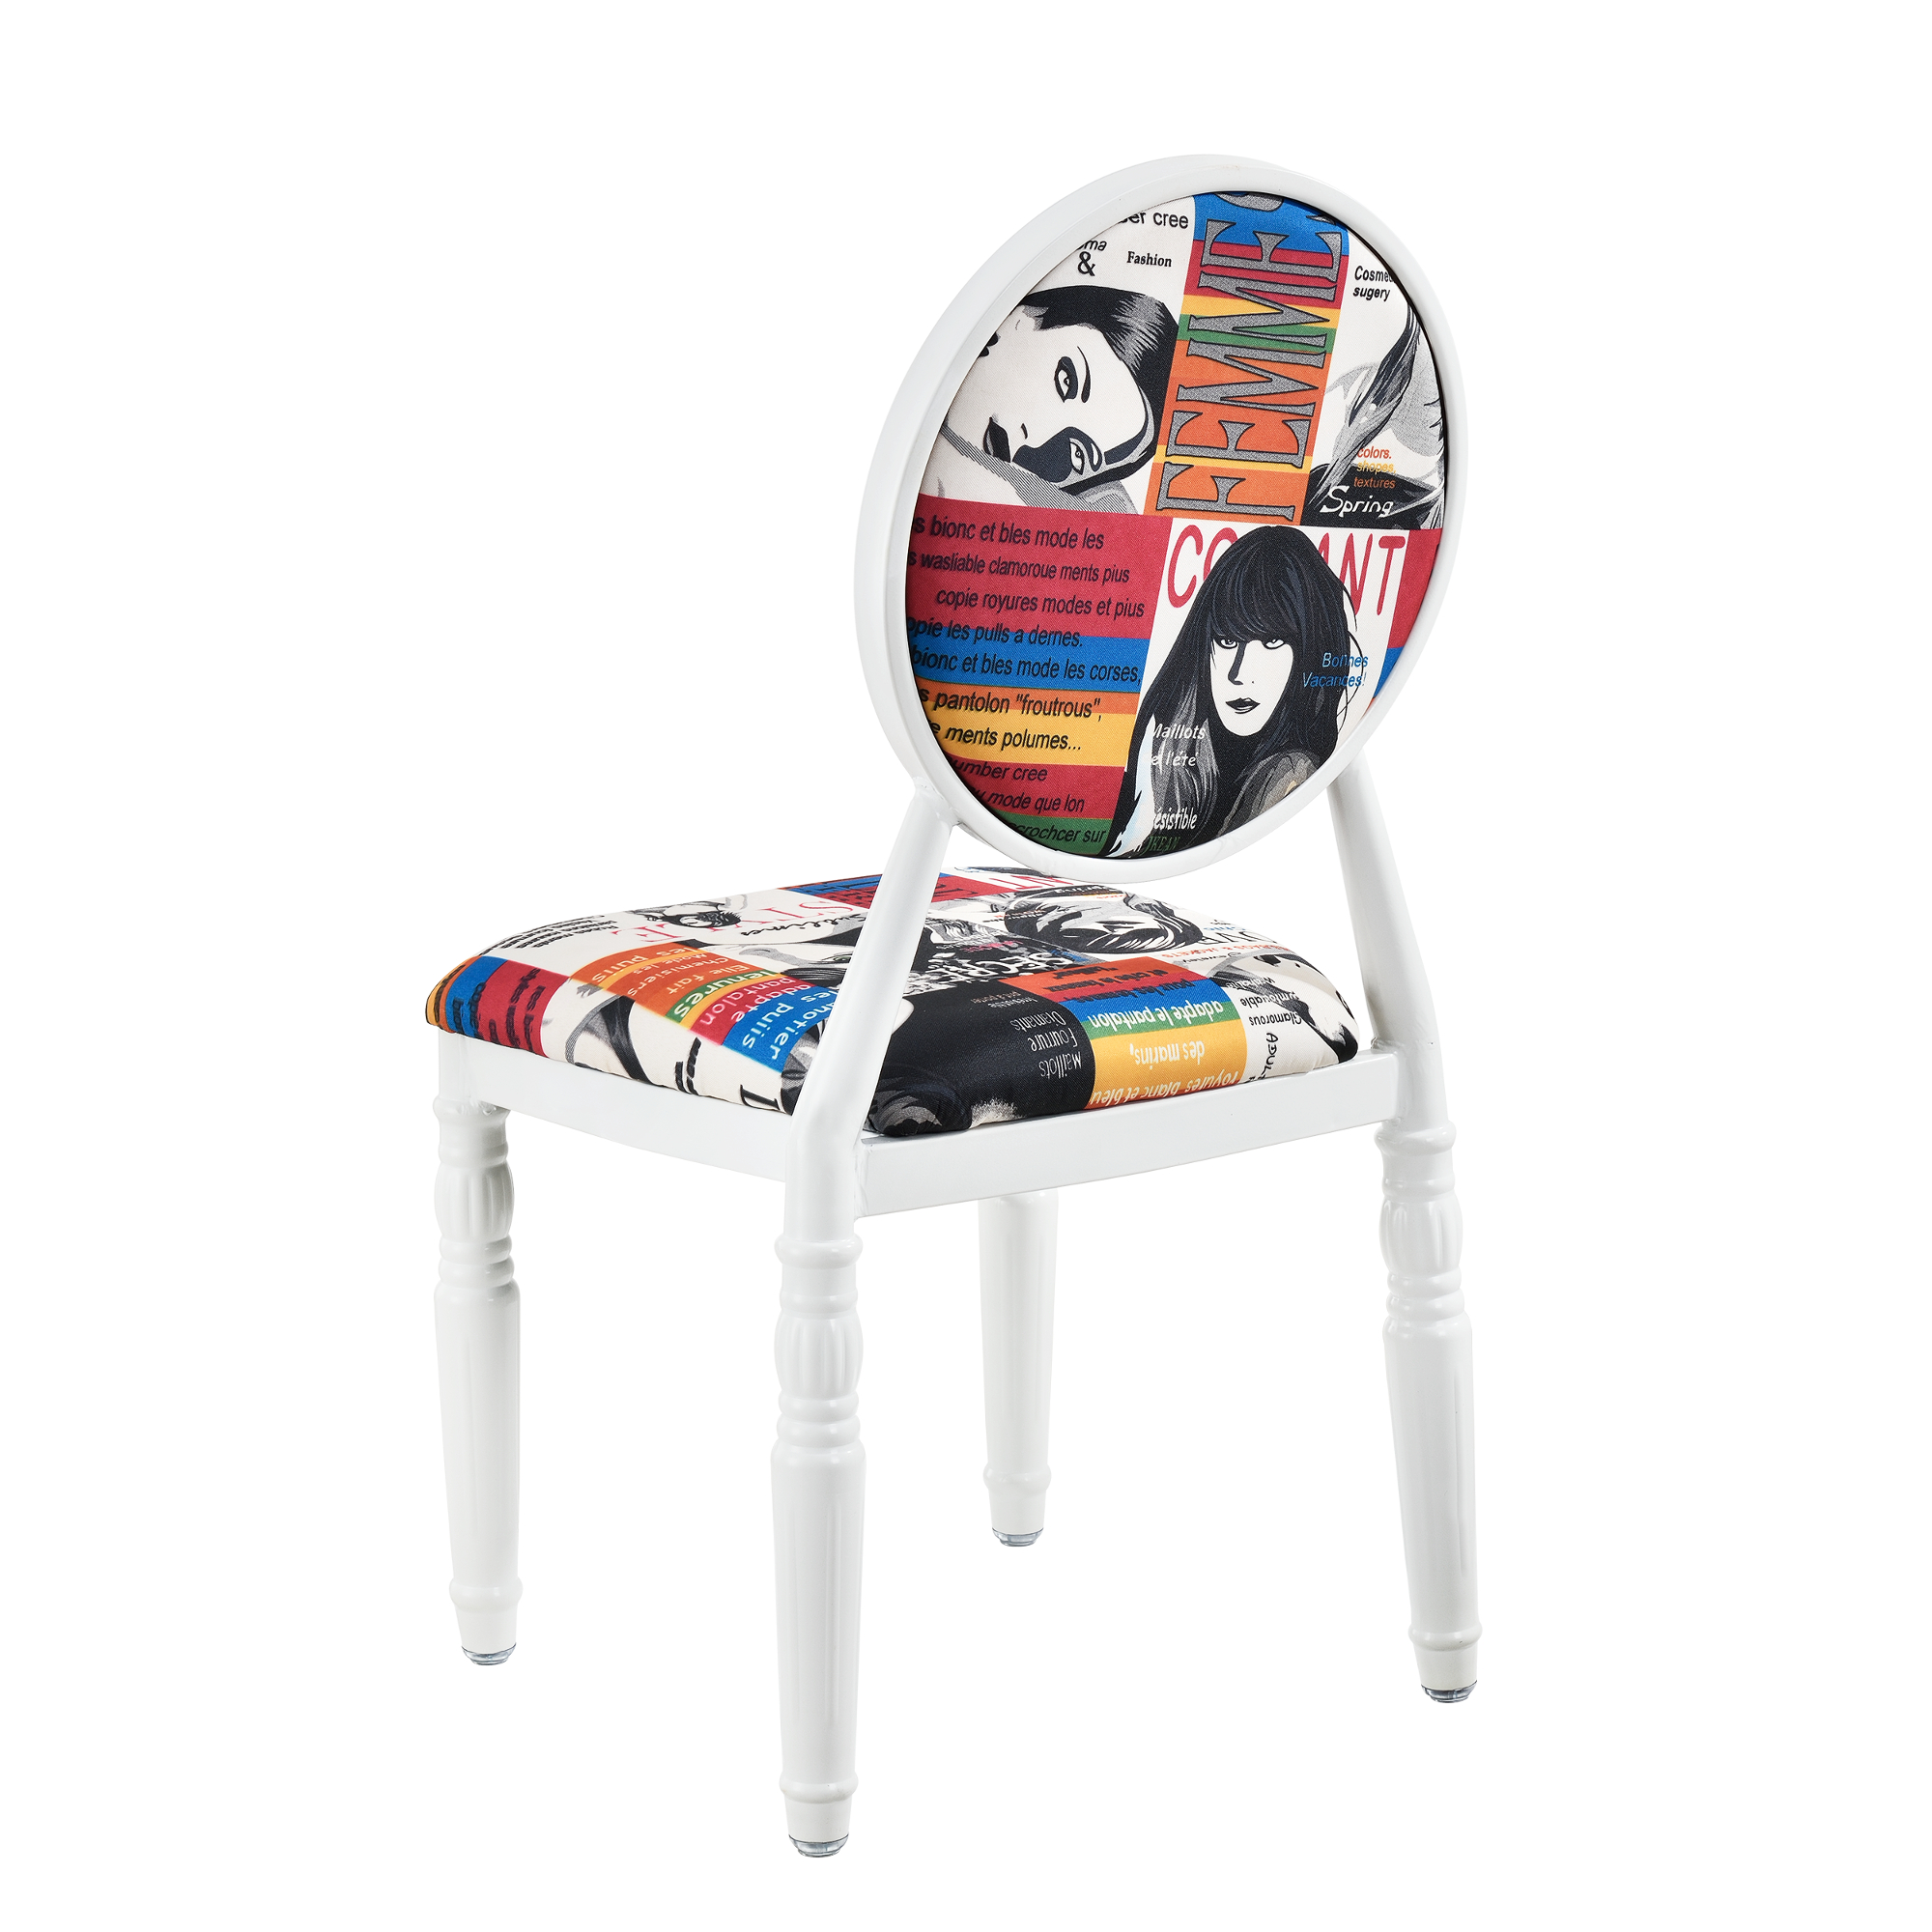 Upholstered chair set of 2 white patchwork for Design stuhl leisure